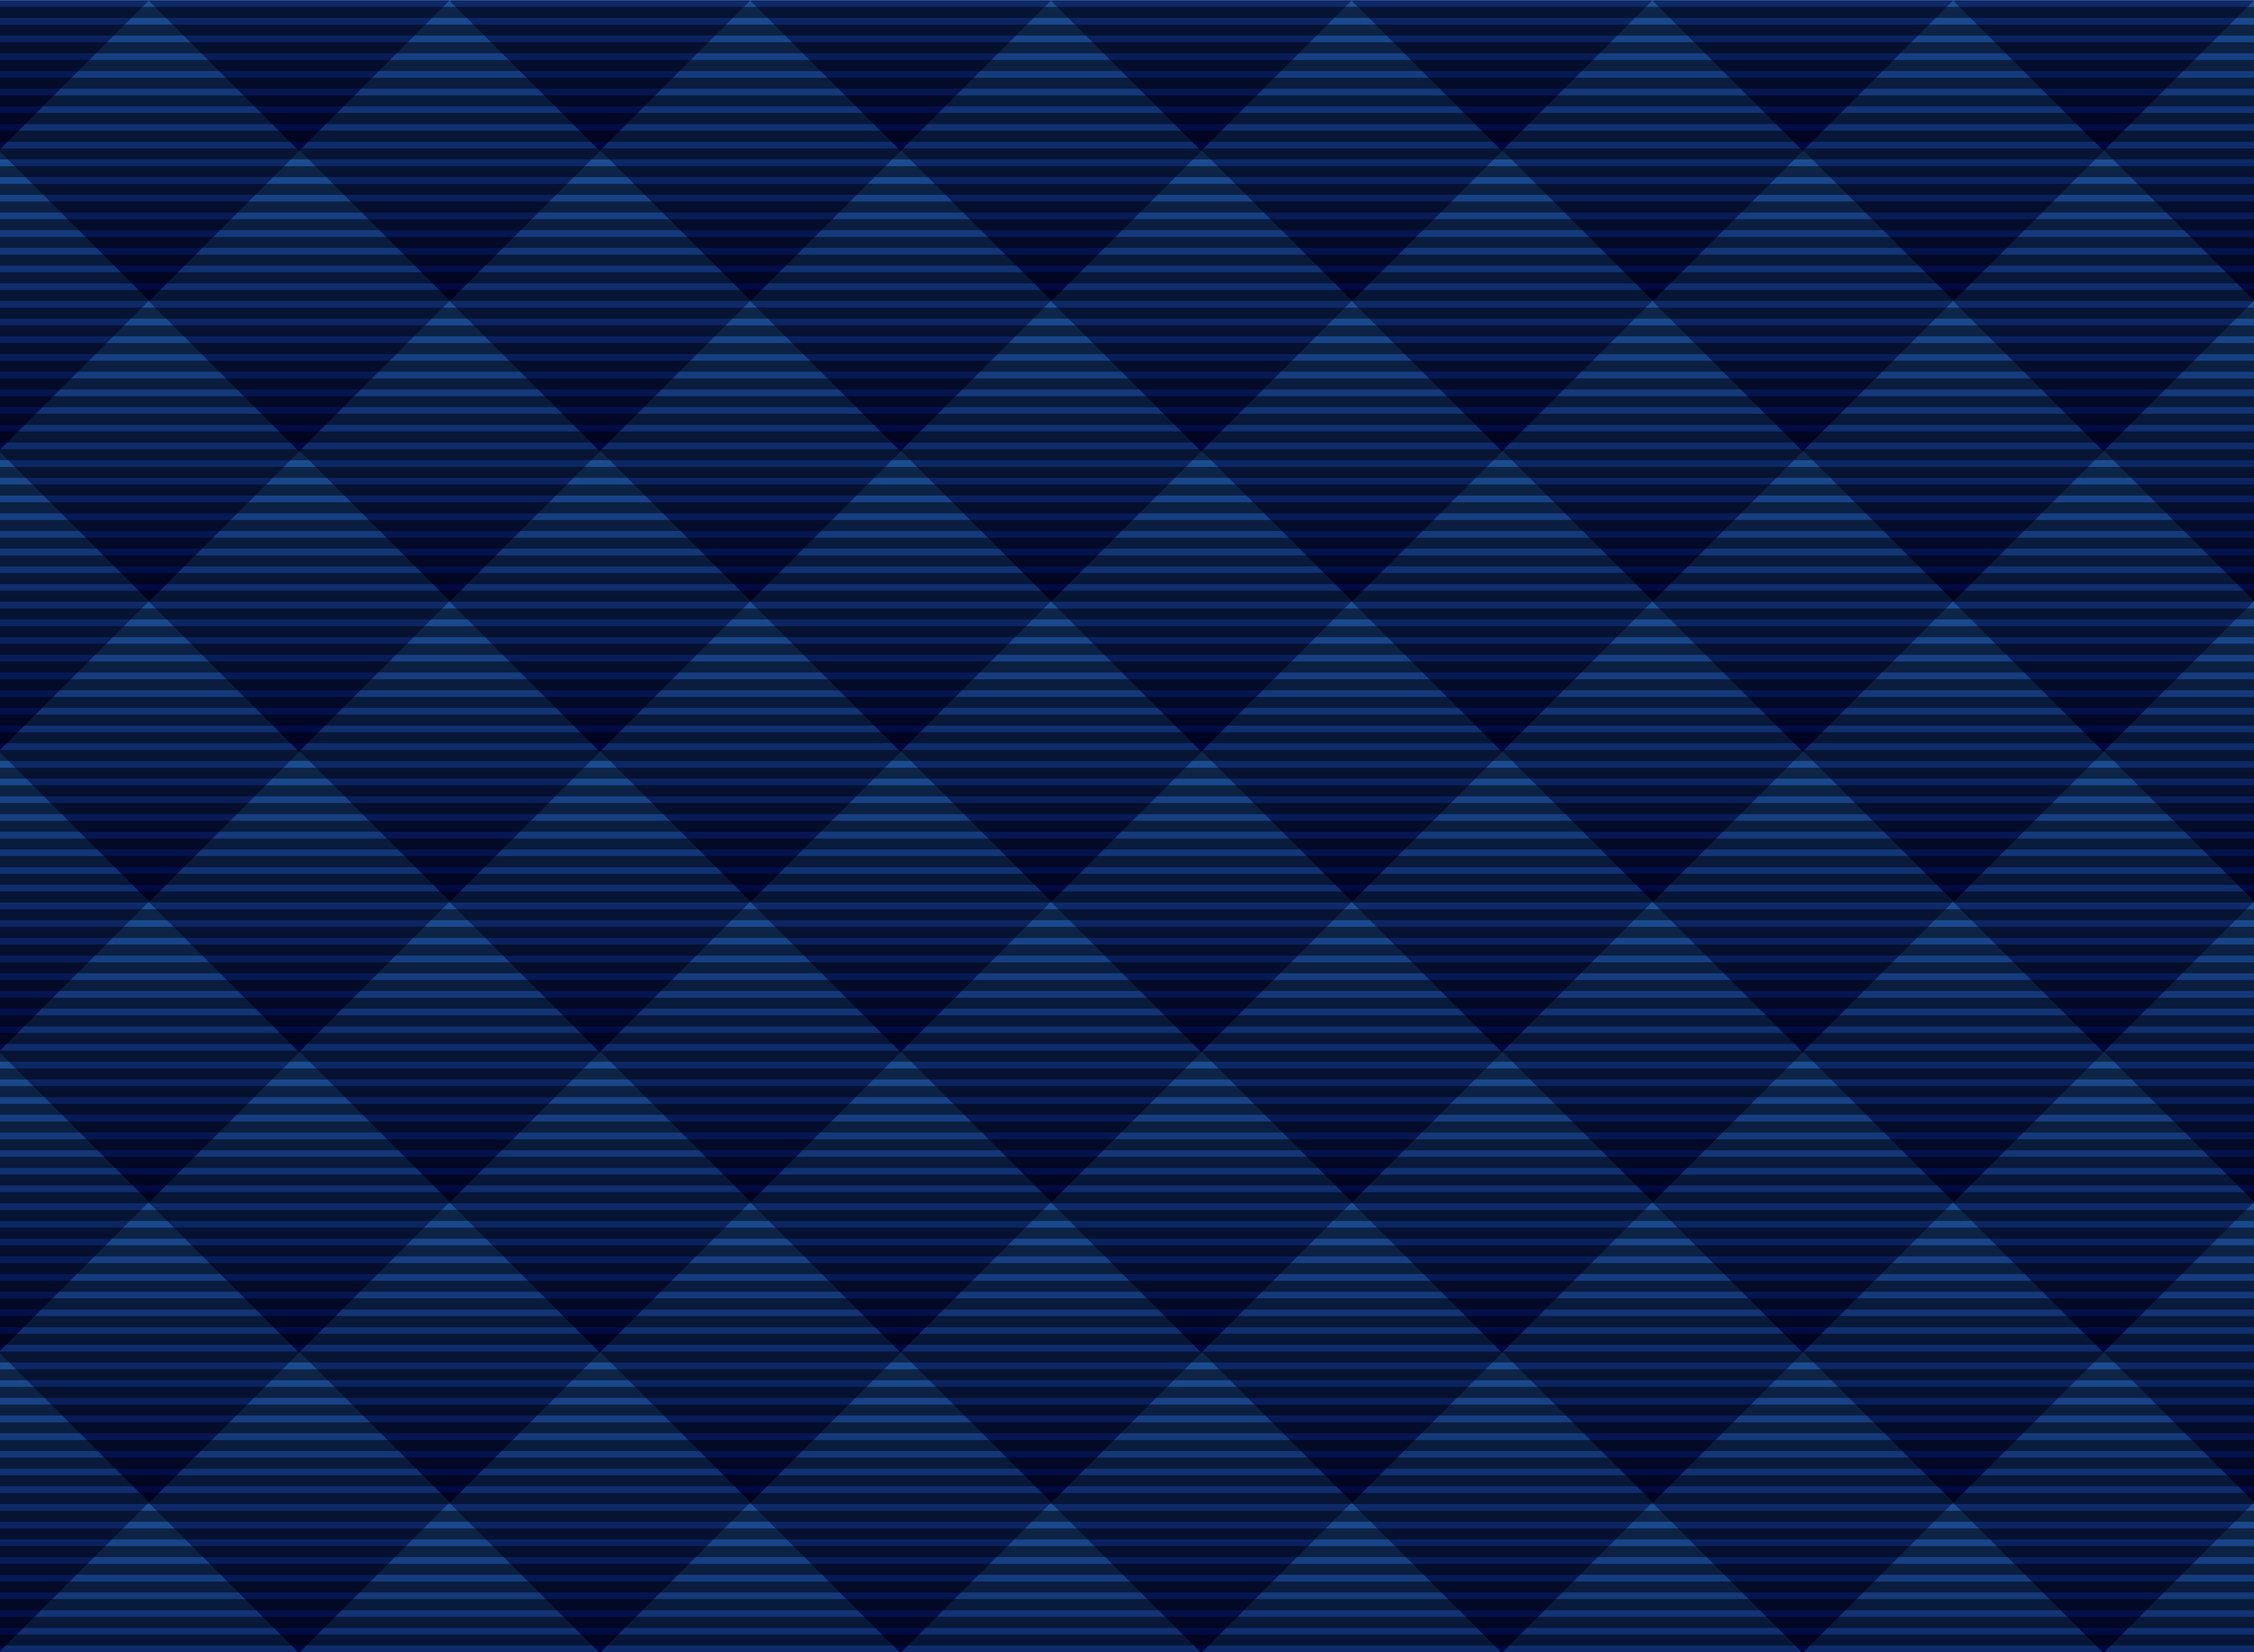 Abstract dark blue squares pattern background subtle lattice 7500x5498